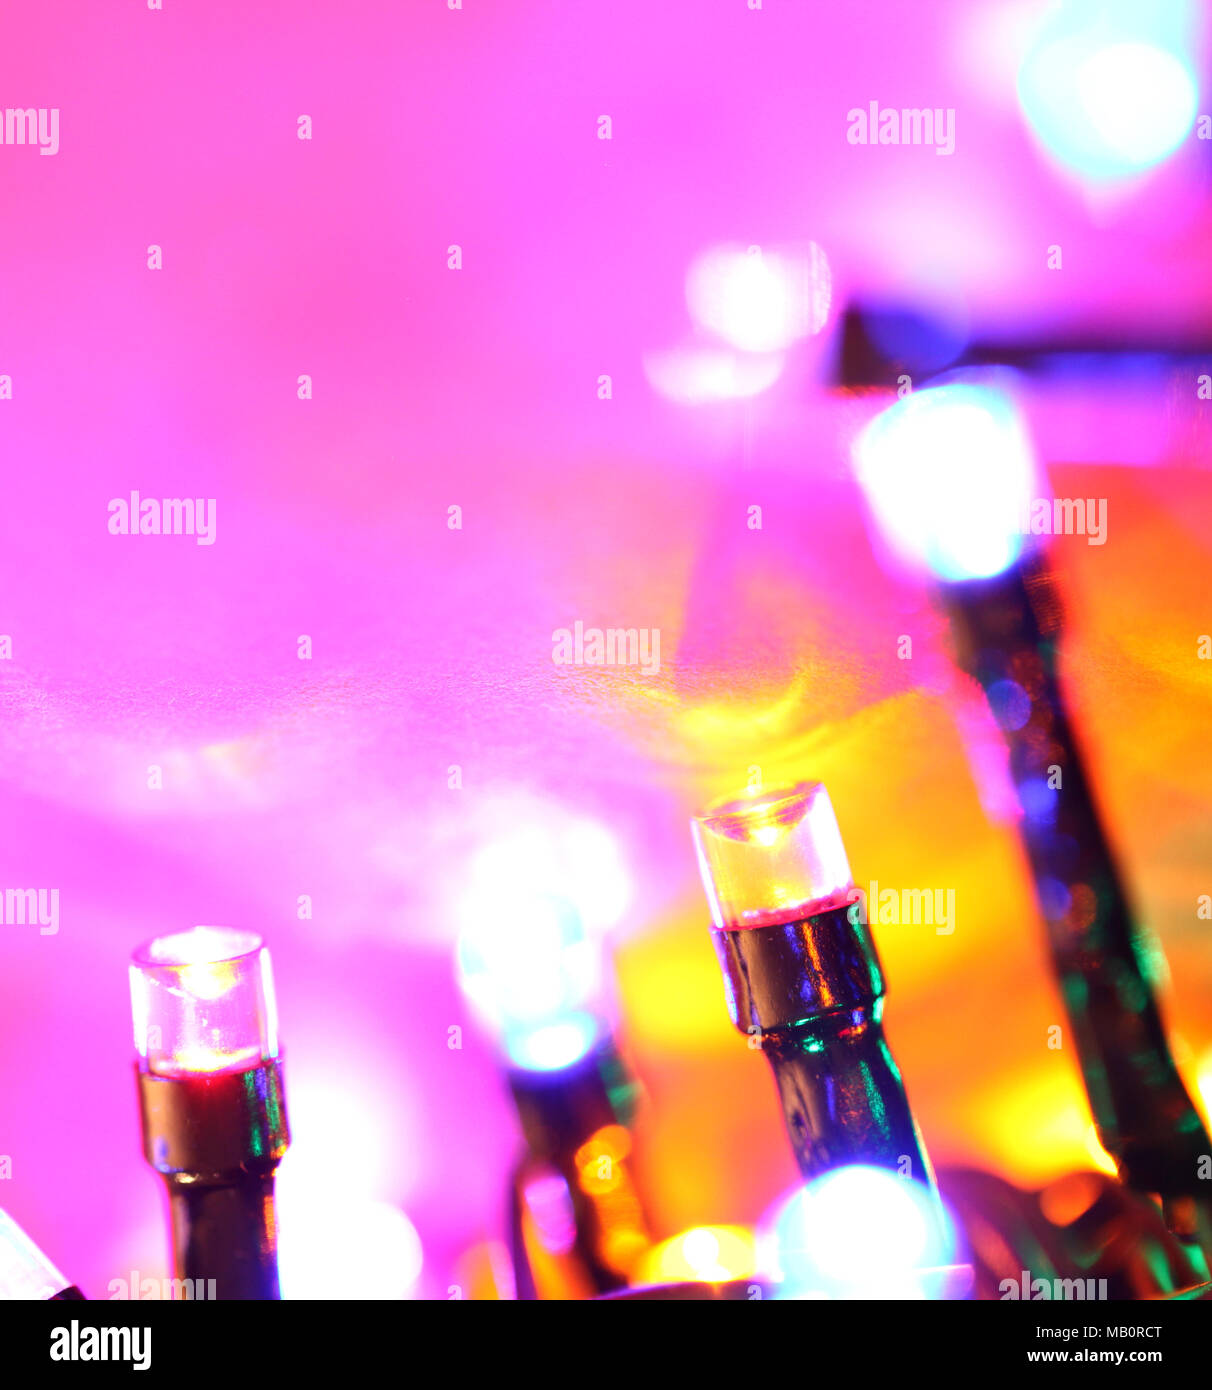 Up Blinking Of Bulbs Close Led Stock Photo178883288 Alamy kXZOiuTP